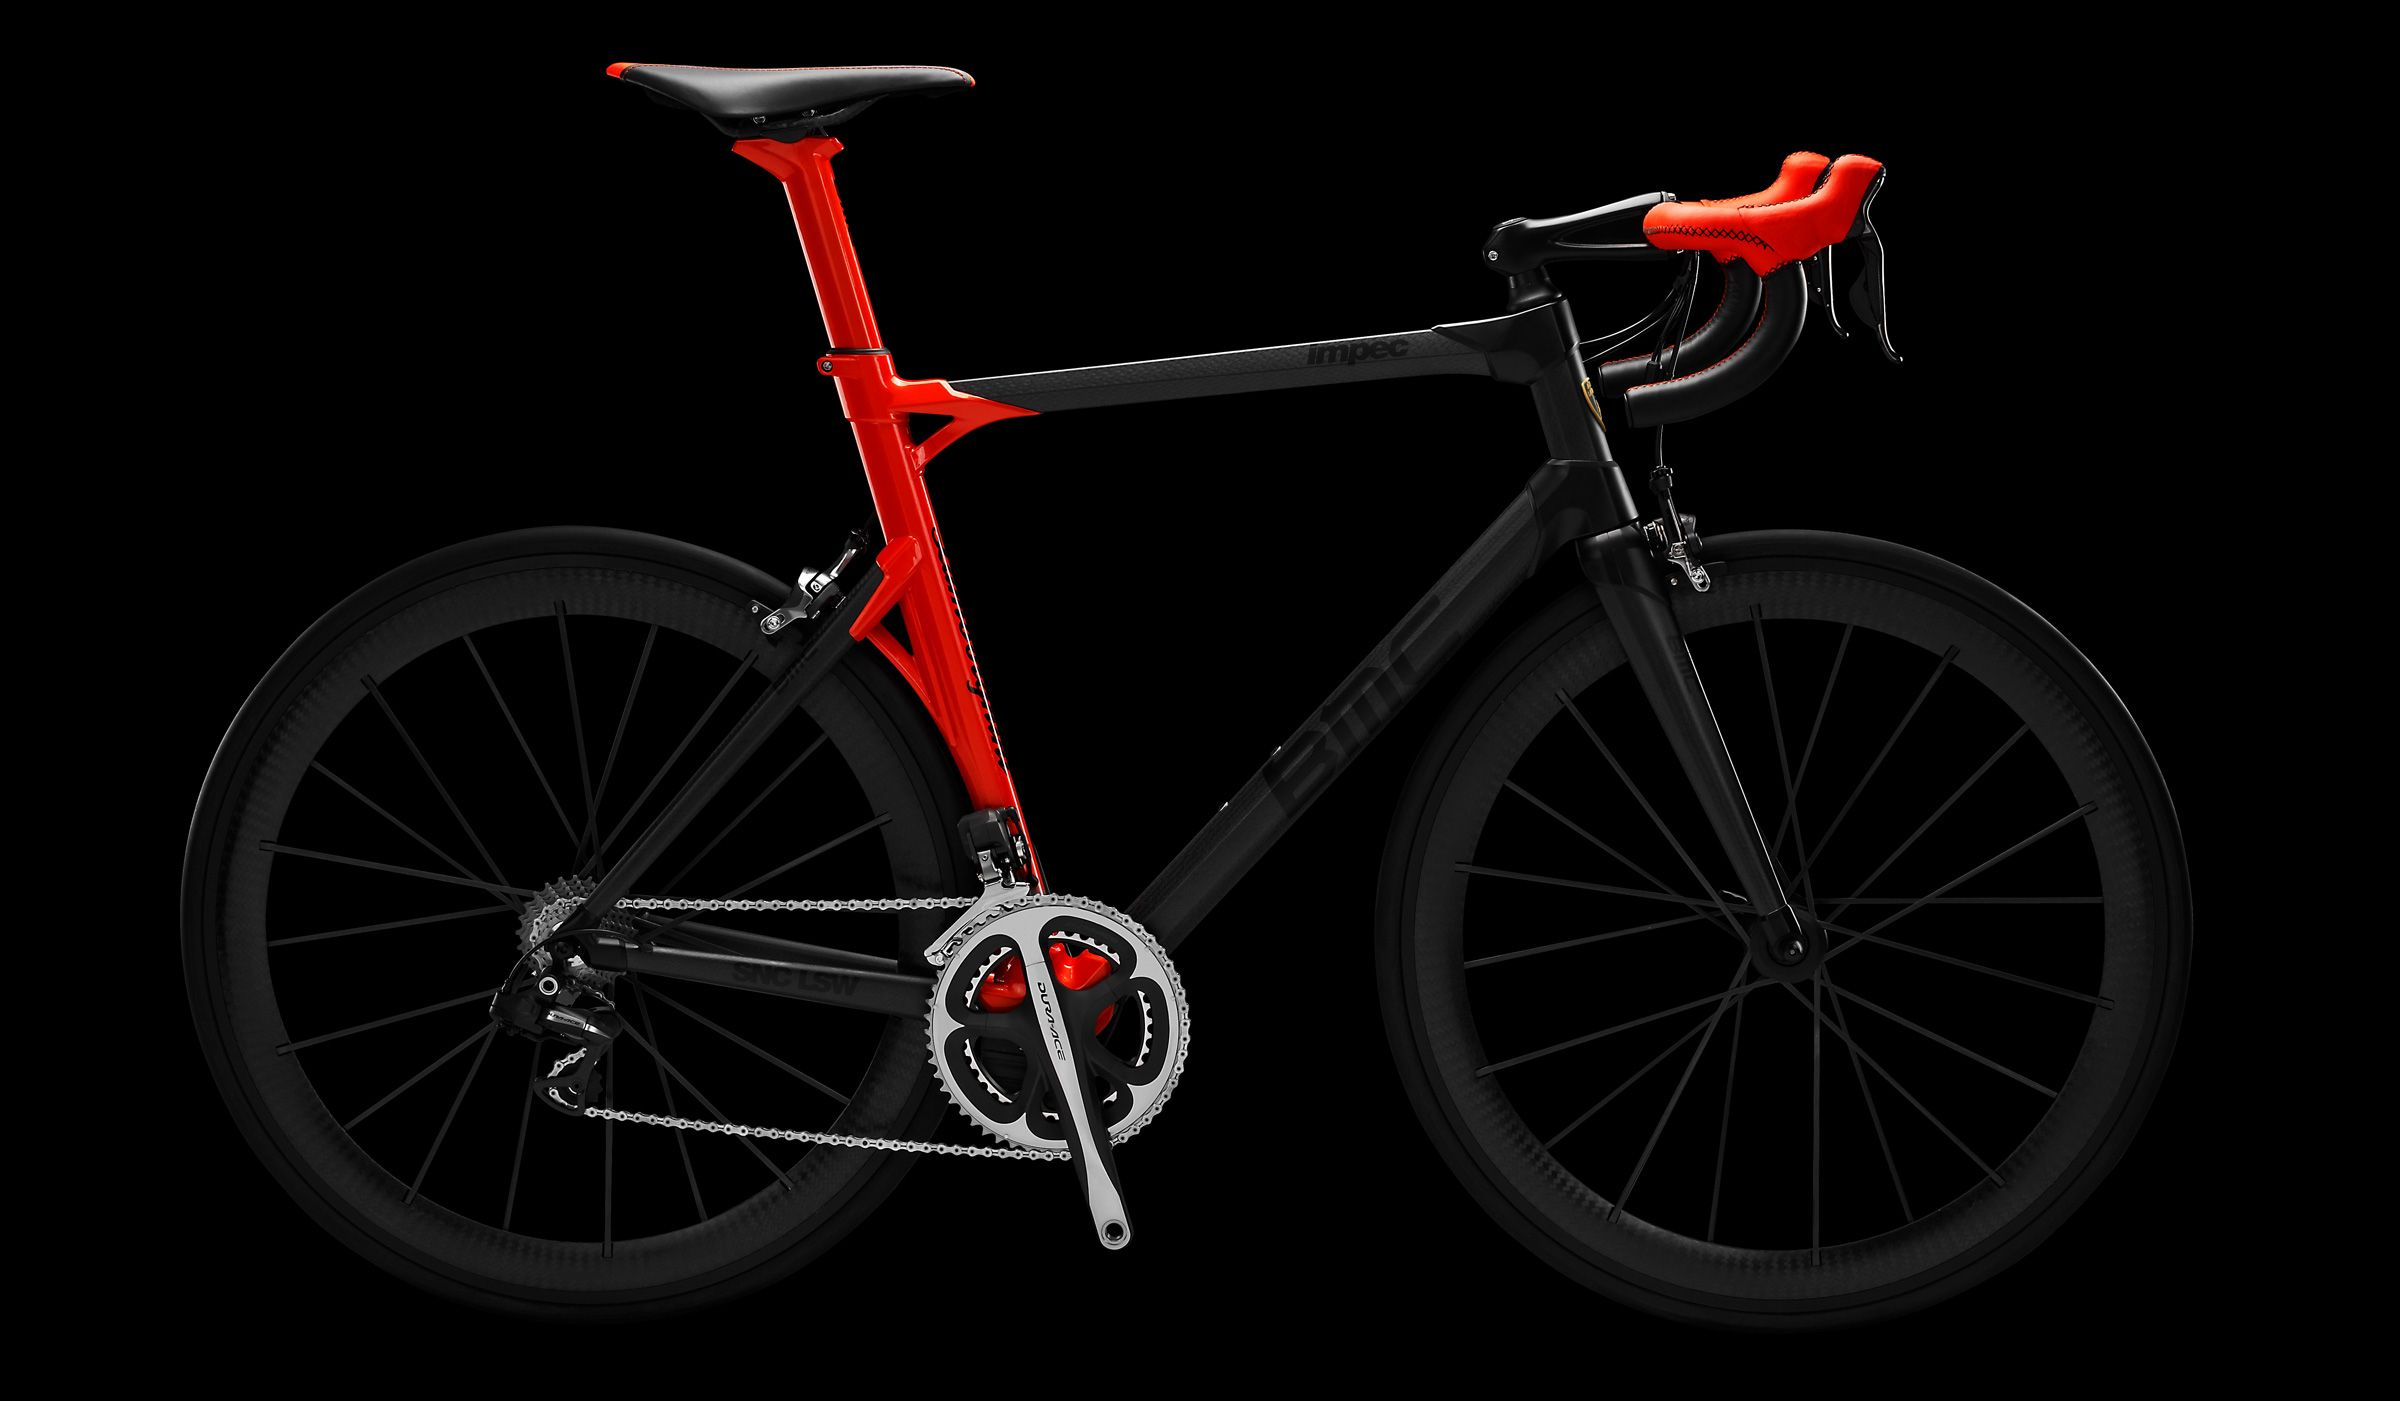 iconic the edition celebrate flair road with their help anniversary partnered cycling mag has combine to freshness of bmc impec italian lamborghini bike